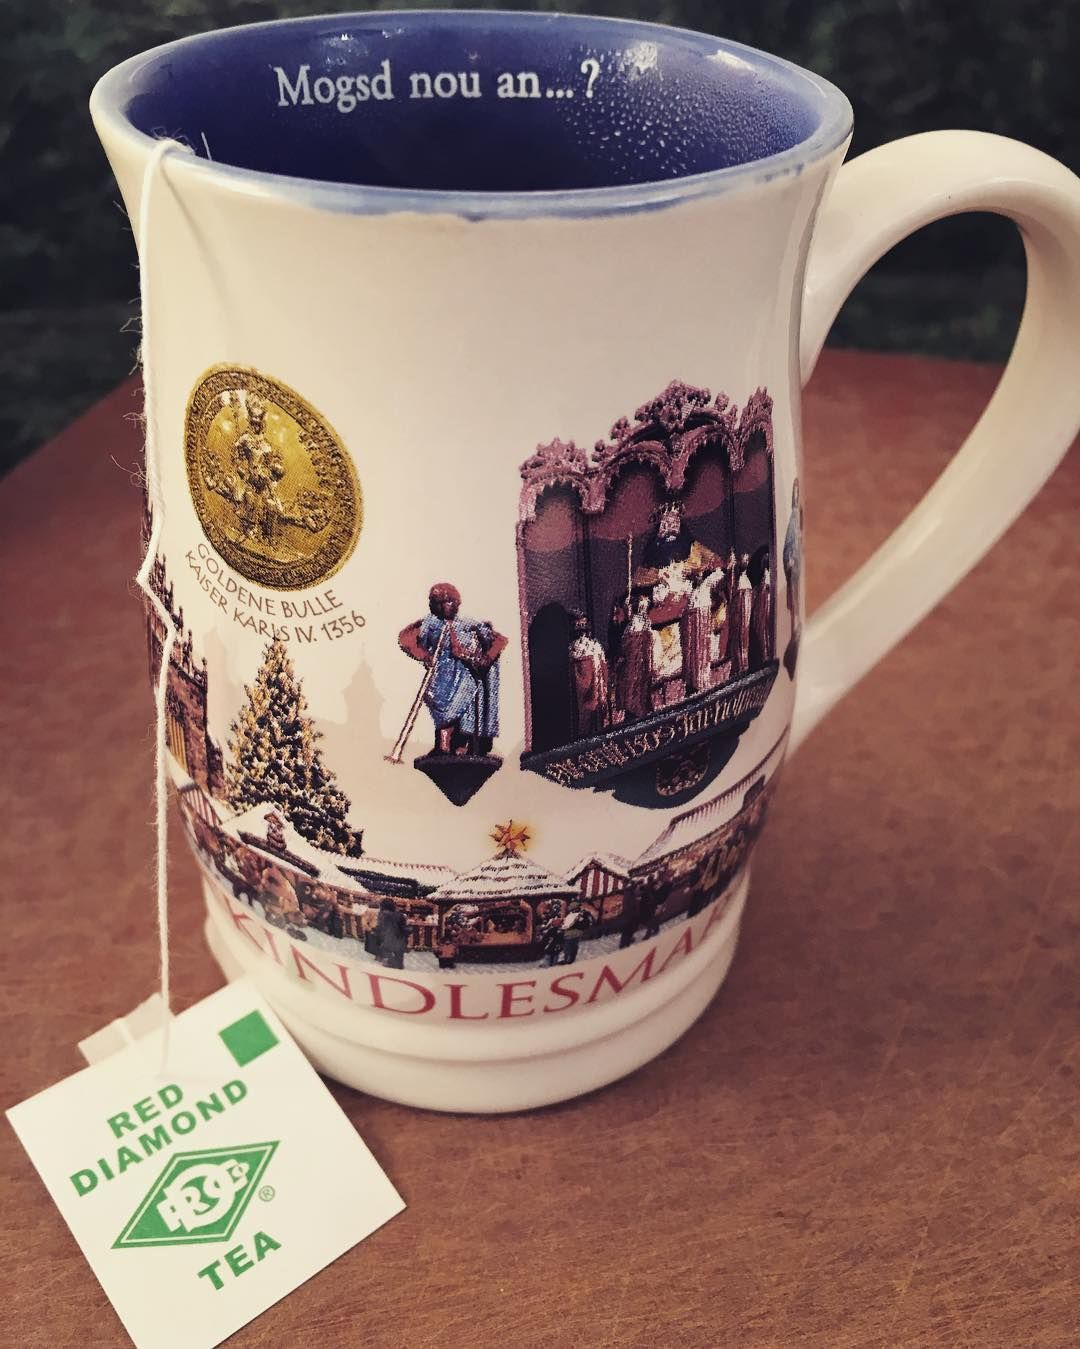 """Alabama meets Germany in Pennsylvania this afternoon!  Enjoying a cup of hot tea to help warm up on this frigid day.  Ever since I lived in #alabama some twenty years ago I've been """"importing"""" tea from #reddiamondtea each year for both summer sweet tea and winter hot tea.  Can't beat it!"""